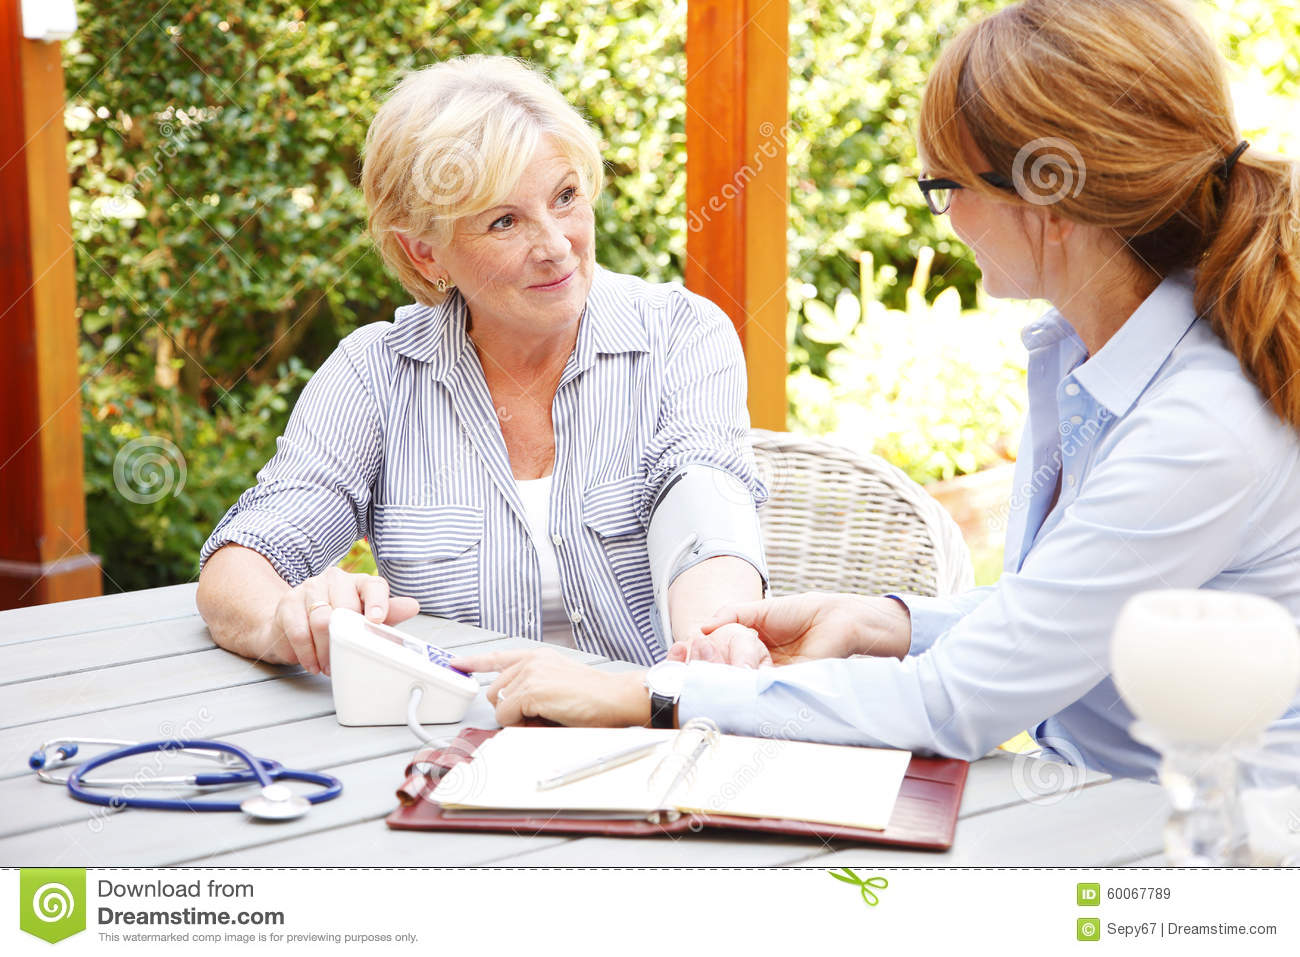 Home Healthcare Stock Photo Image 60067789